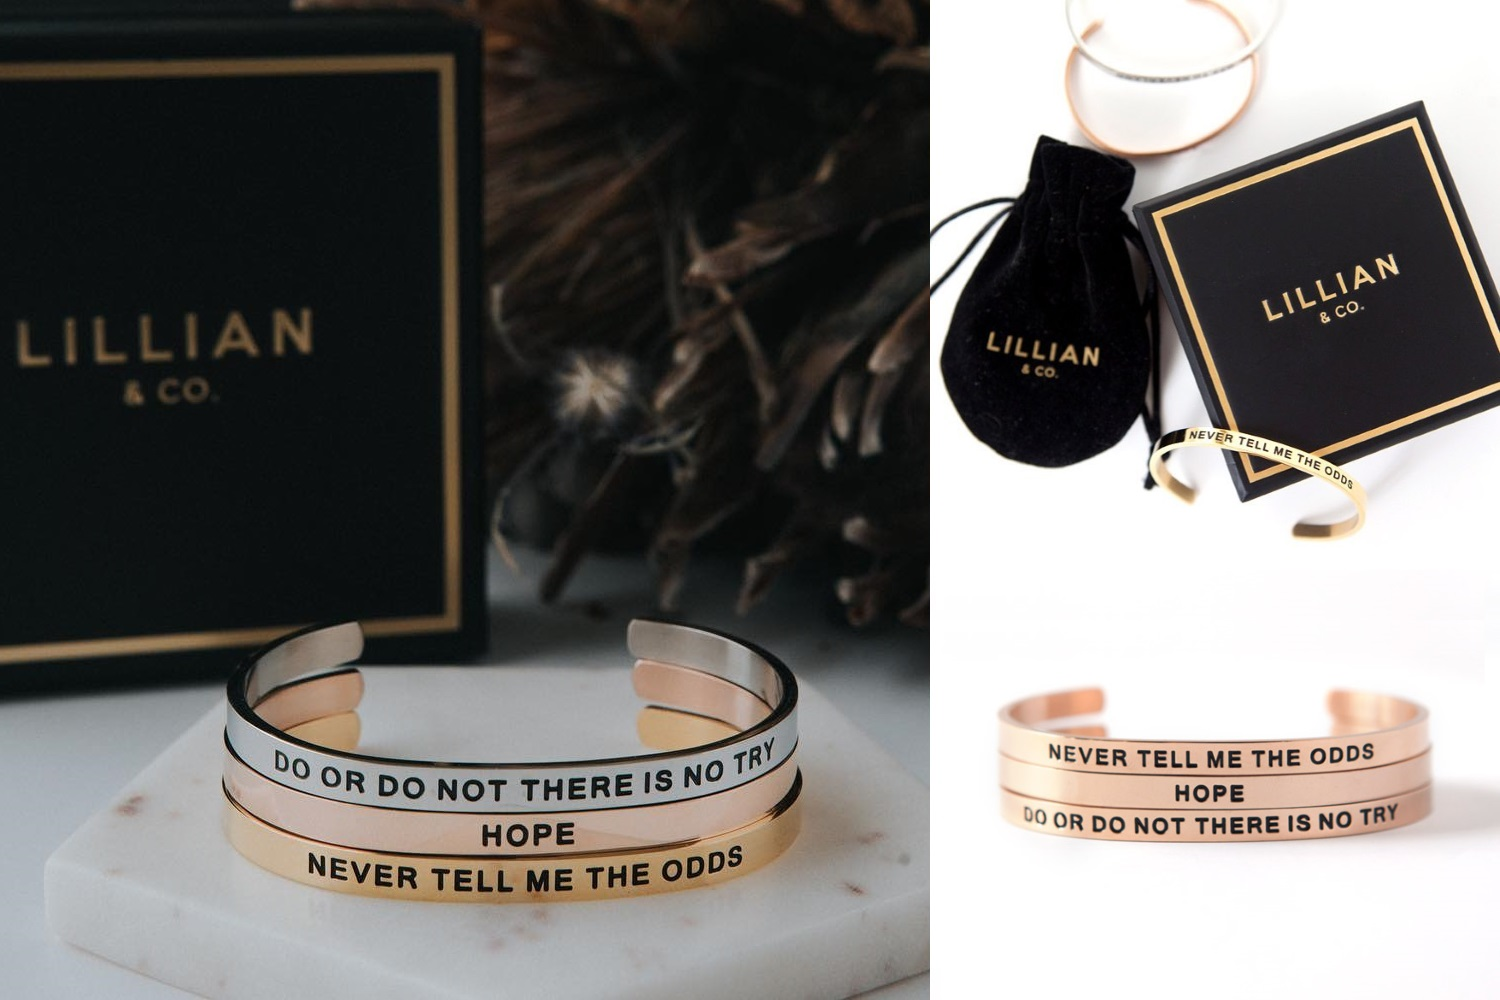 Star Wars Inspired Bracelets by Lillian & Co